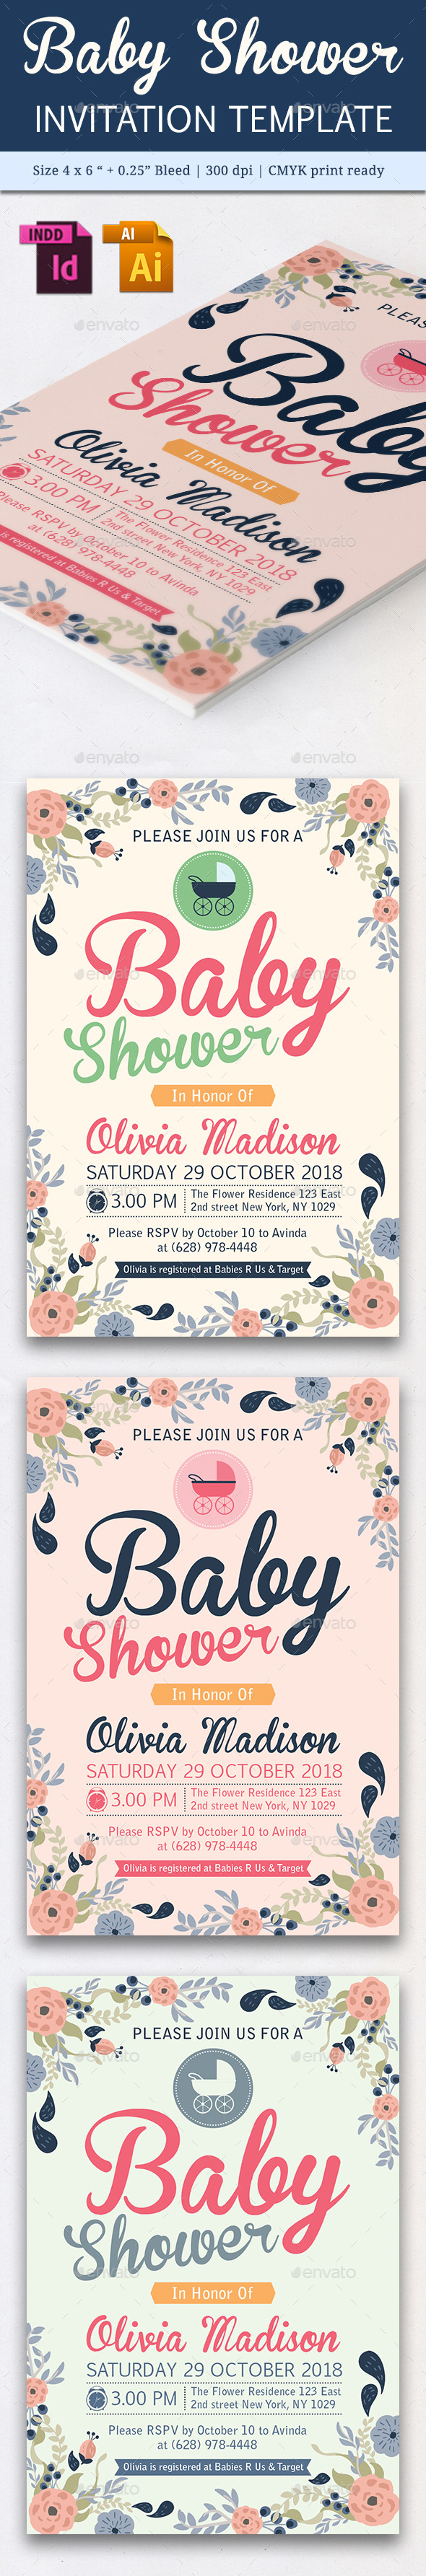 Baby Shower Template - Vol. 17 - Cards & Invites Print Templates